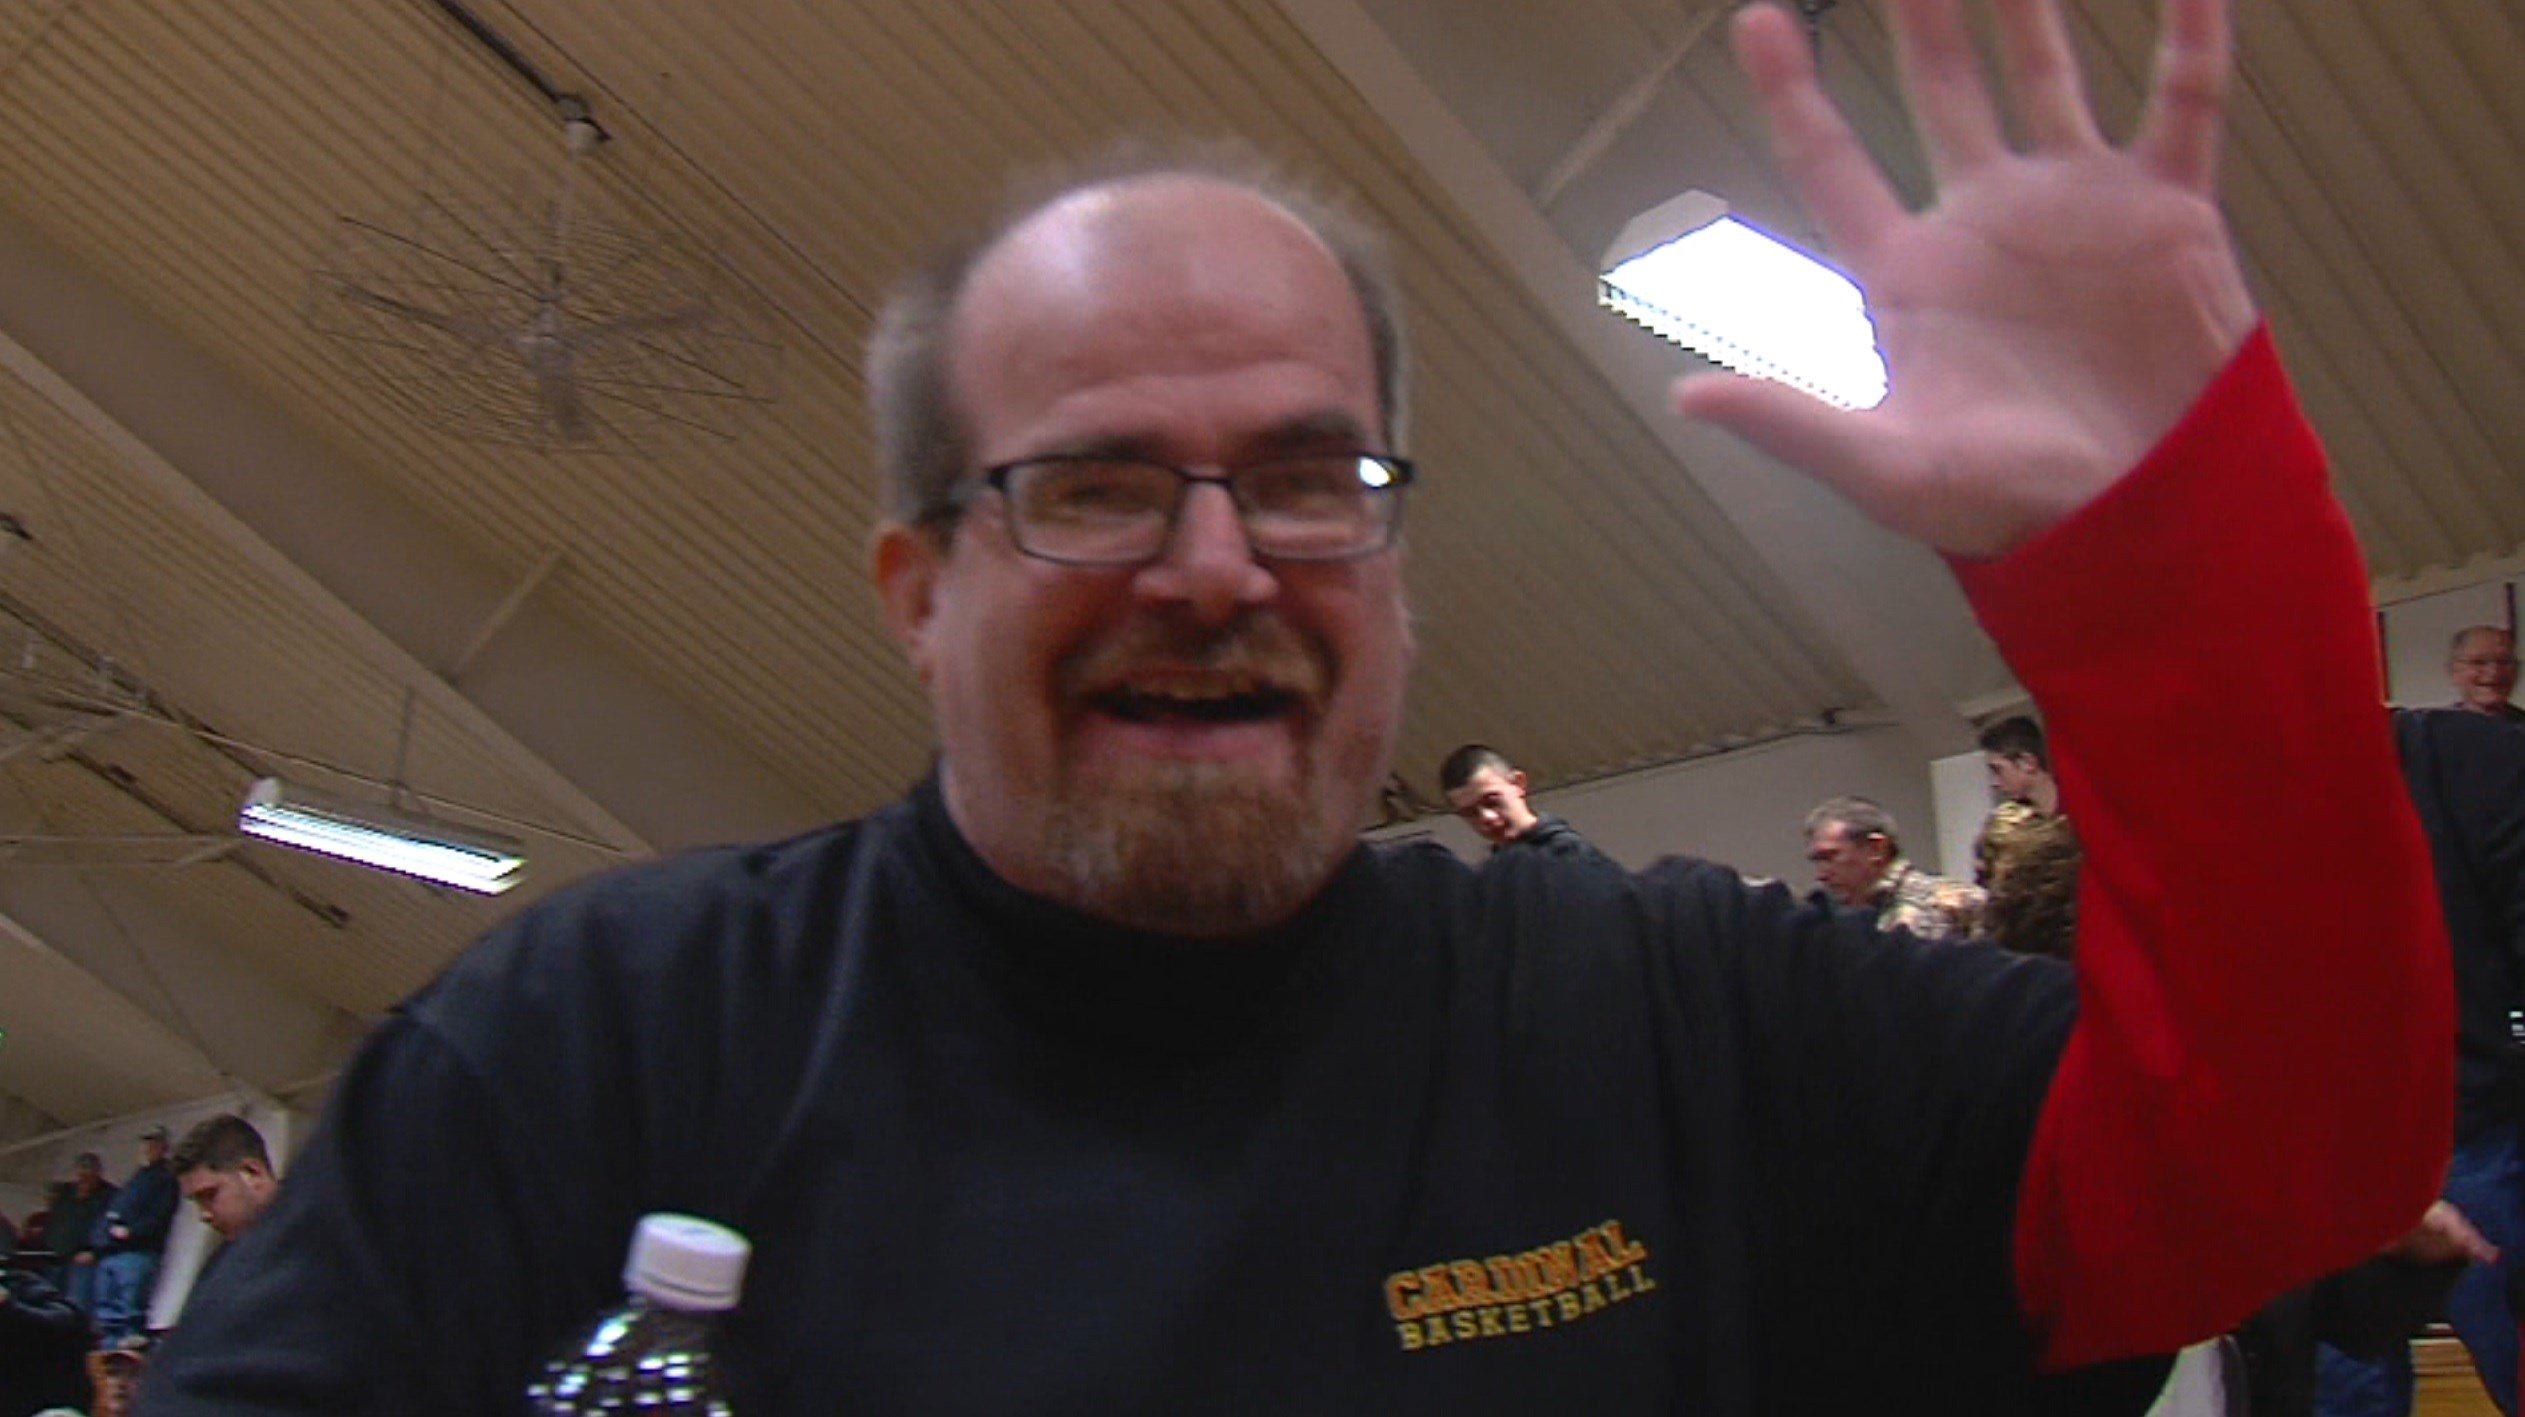 Warrensburg-Latham's Todd Yokley is joining the IBCA Hall of Fame's Class of 2018.